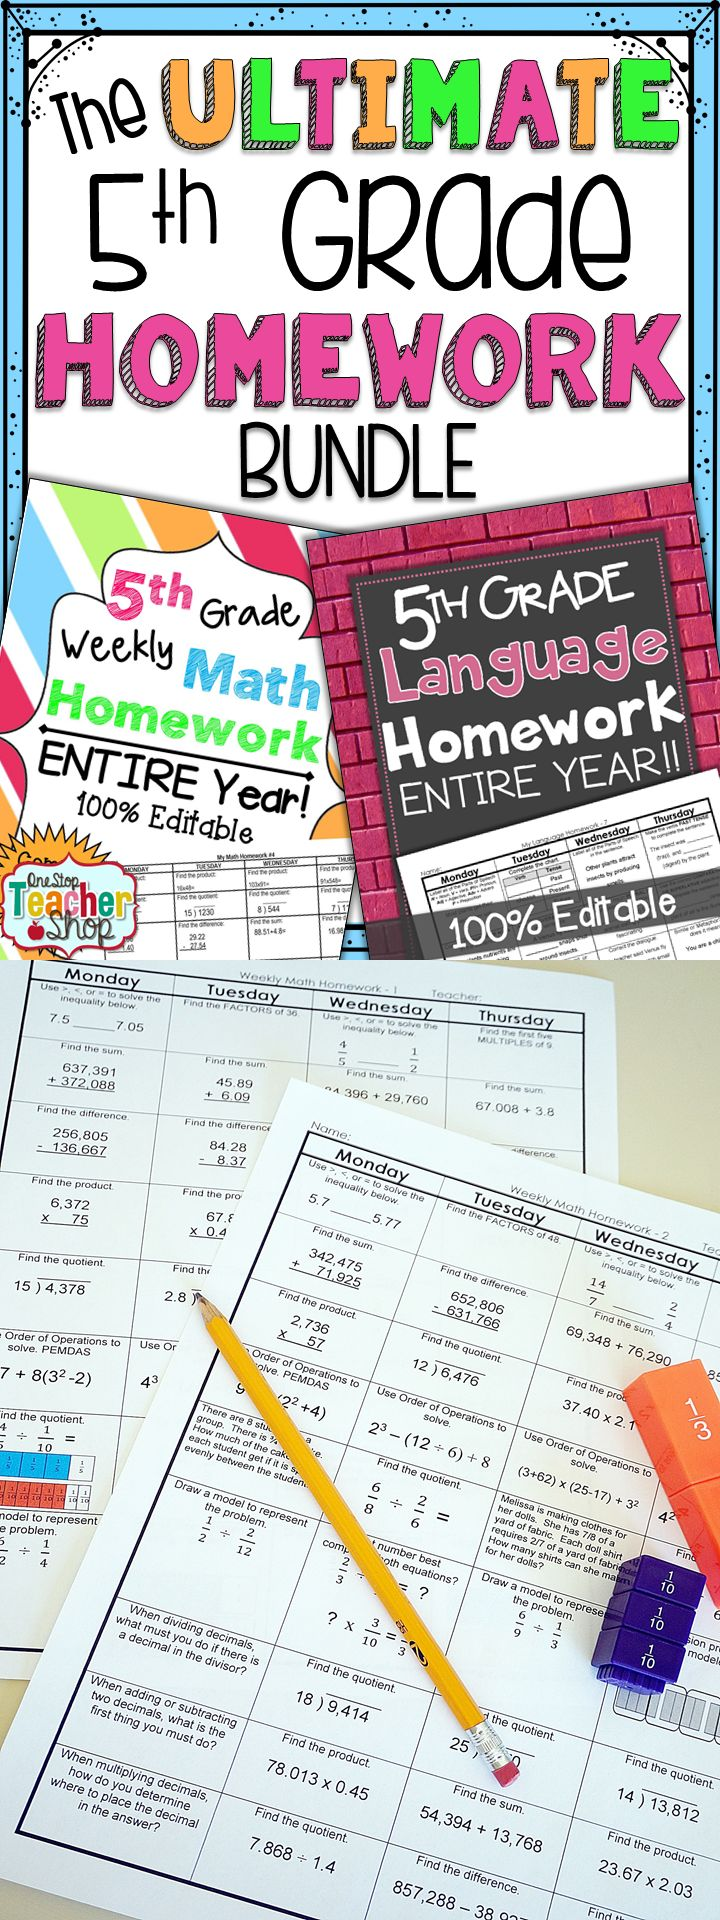 5th Grade Math & Language Homework for the ENTIRE YEAR.  This fifth grade homework (or centers, or morning work) is 100% EDITABLE, and comes with ANSWER KEYS! Common Core Aligned.  SAVE $